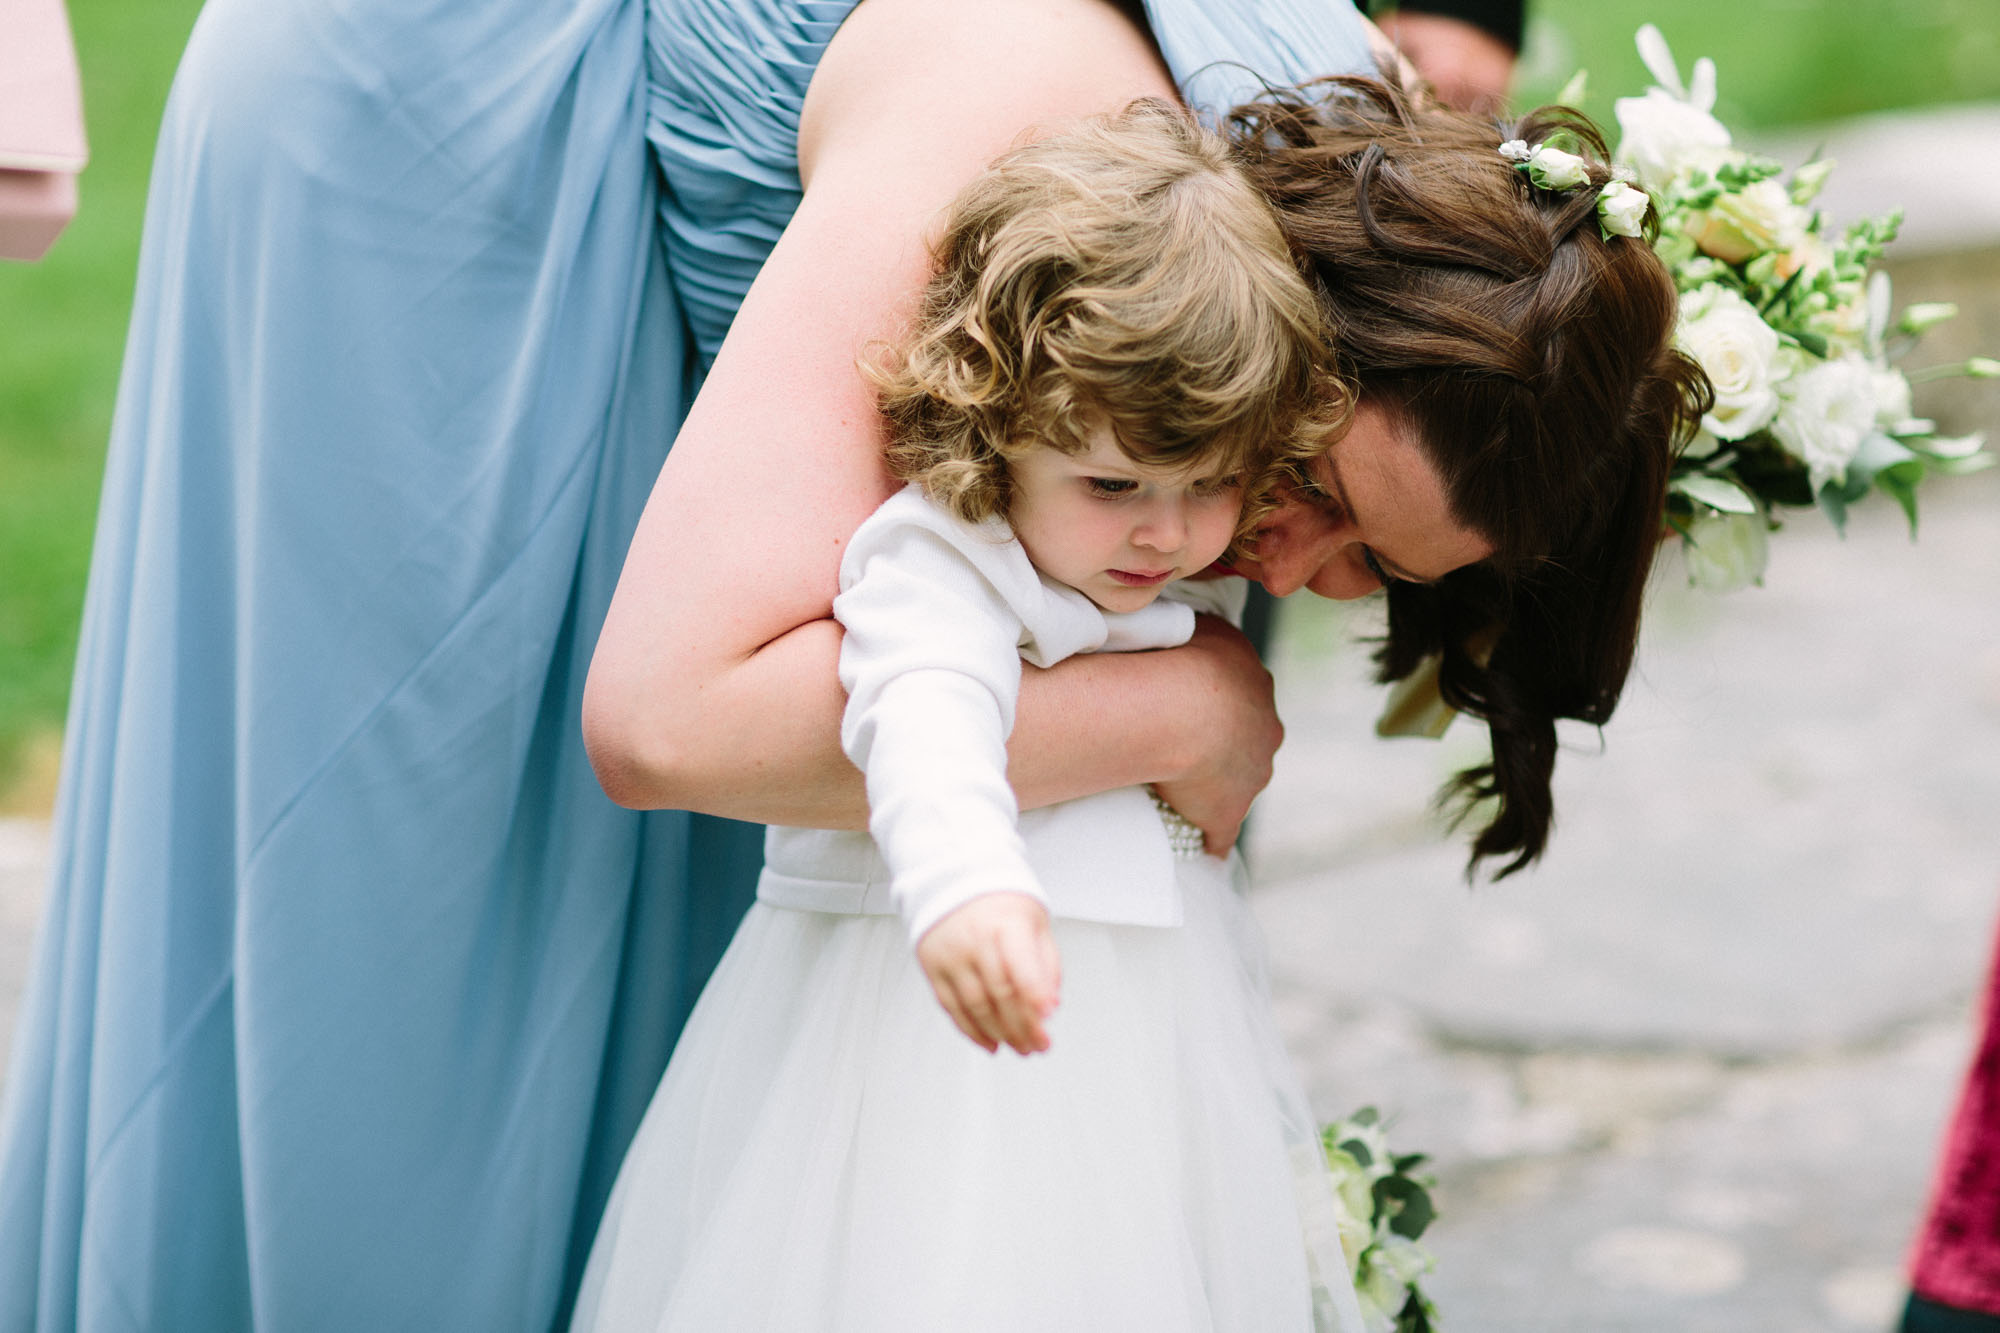 Flower girl being hugged by bridesmaid